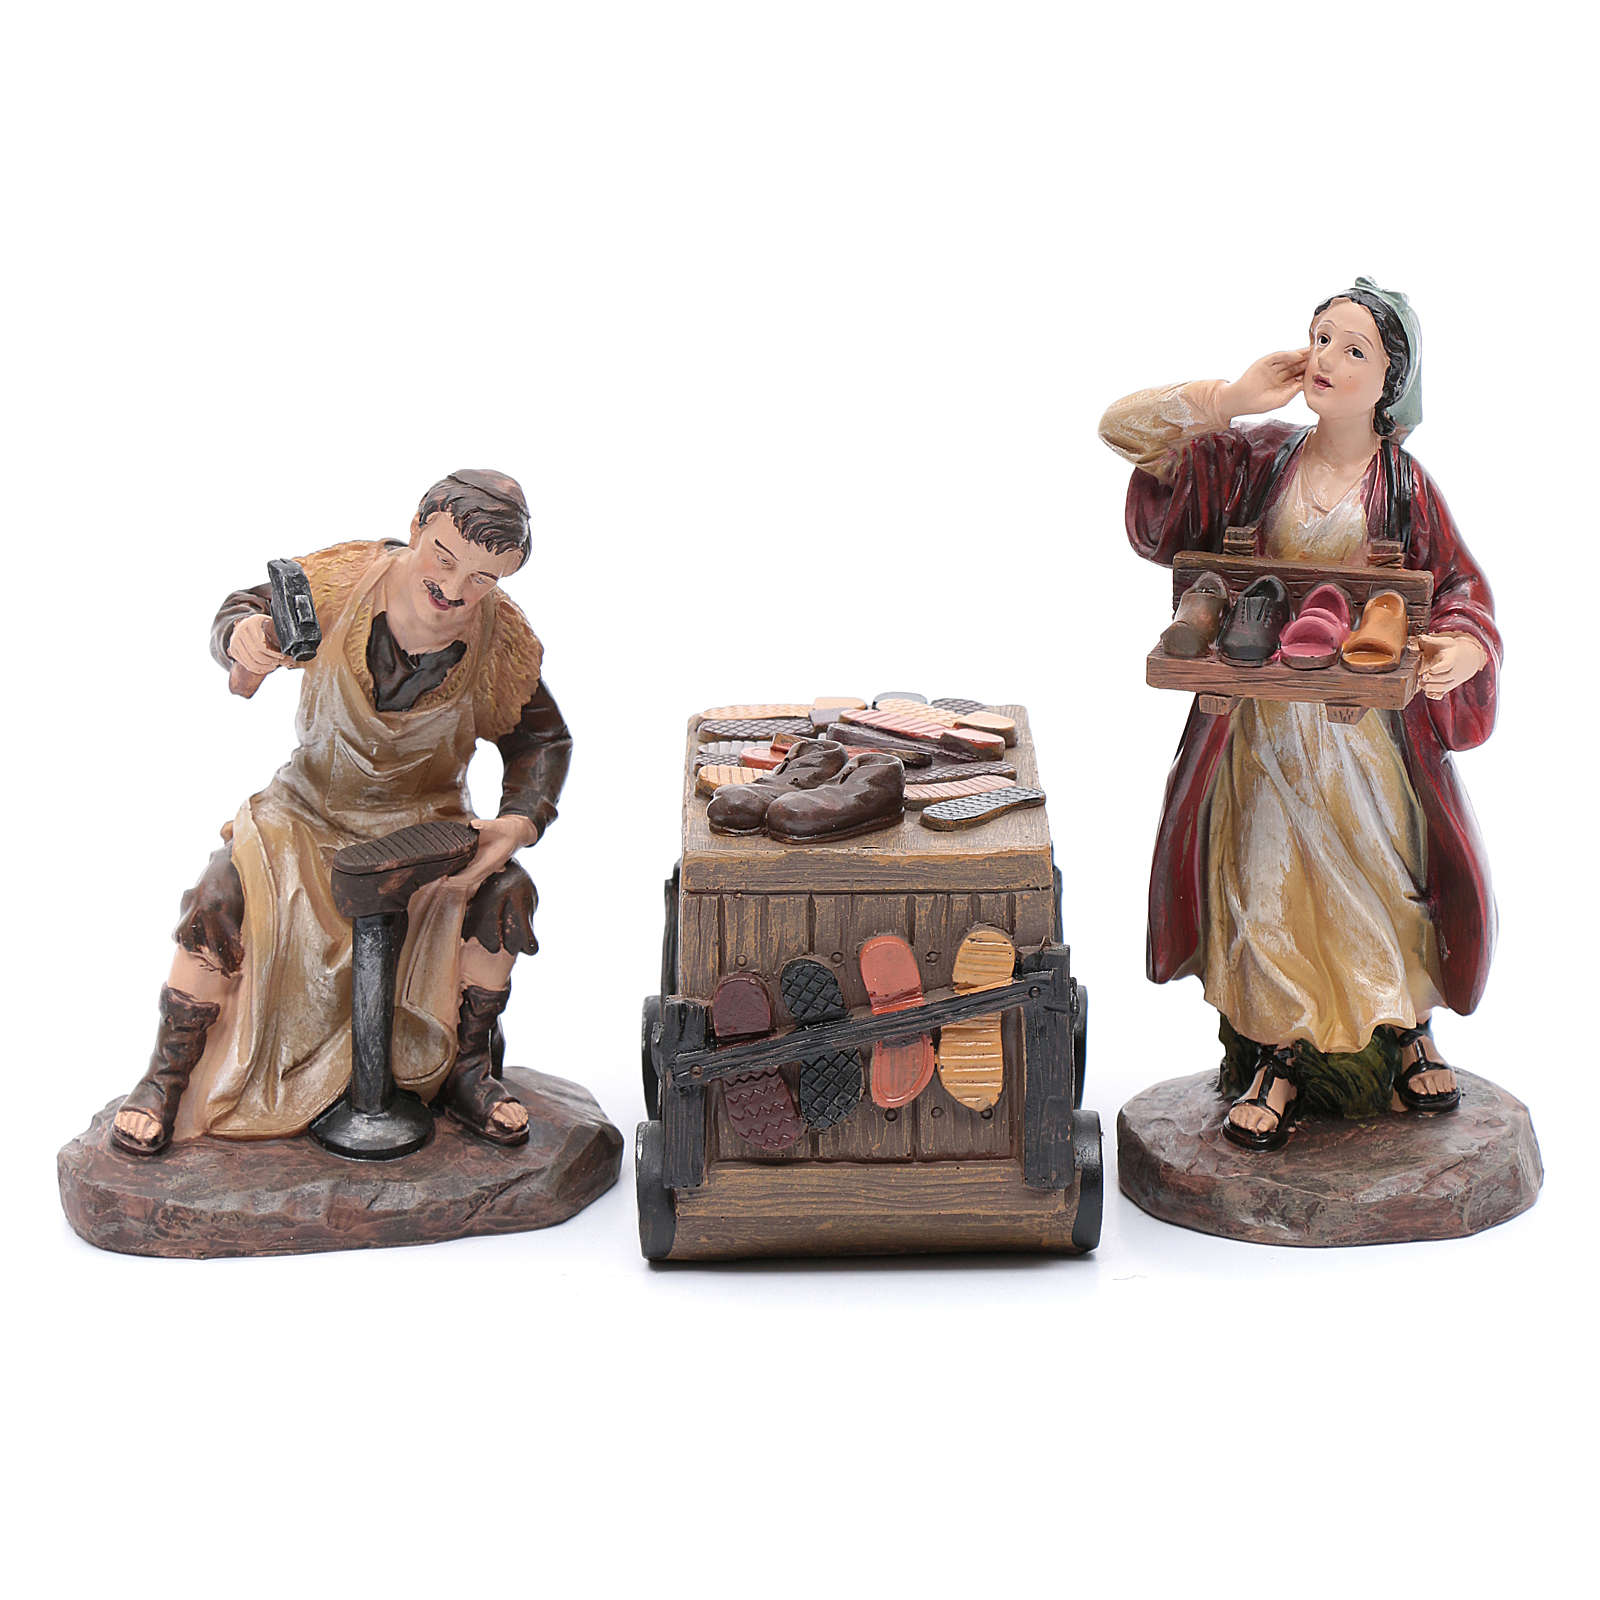 Nativity scene characters shoemakers with counter resin 20 cm set of 3 pieces 3